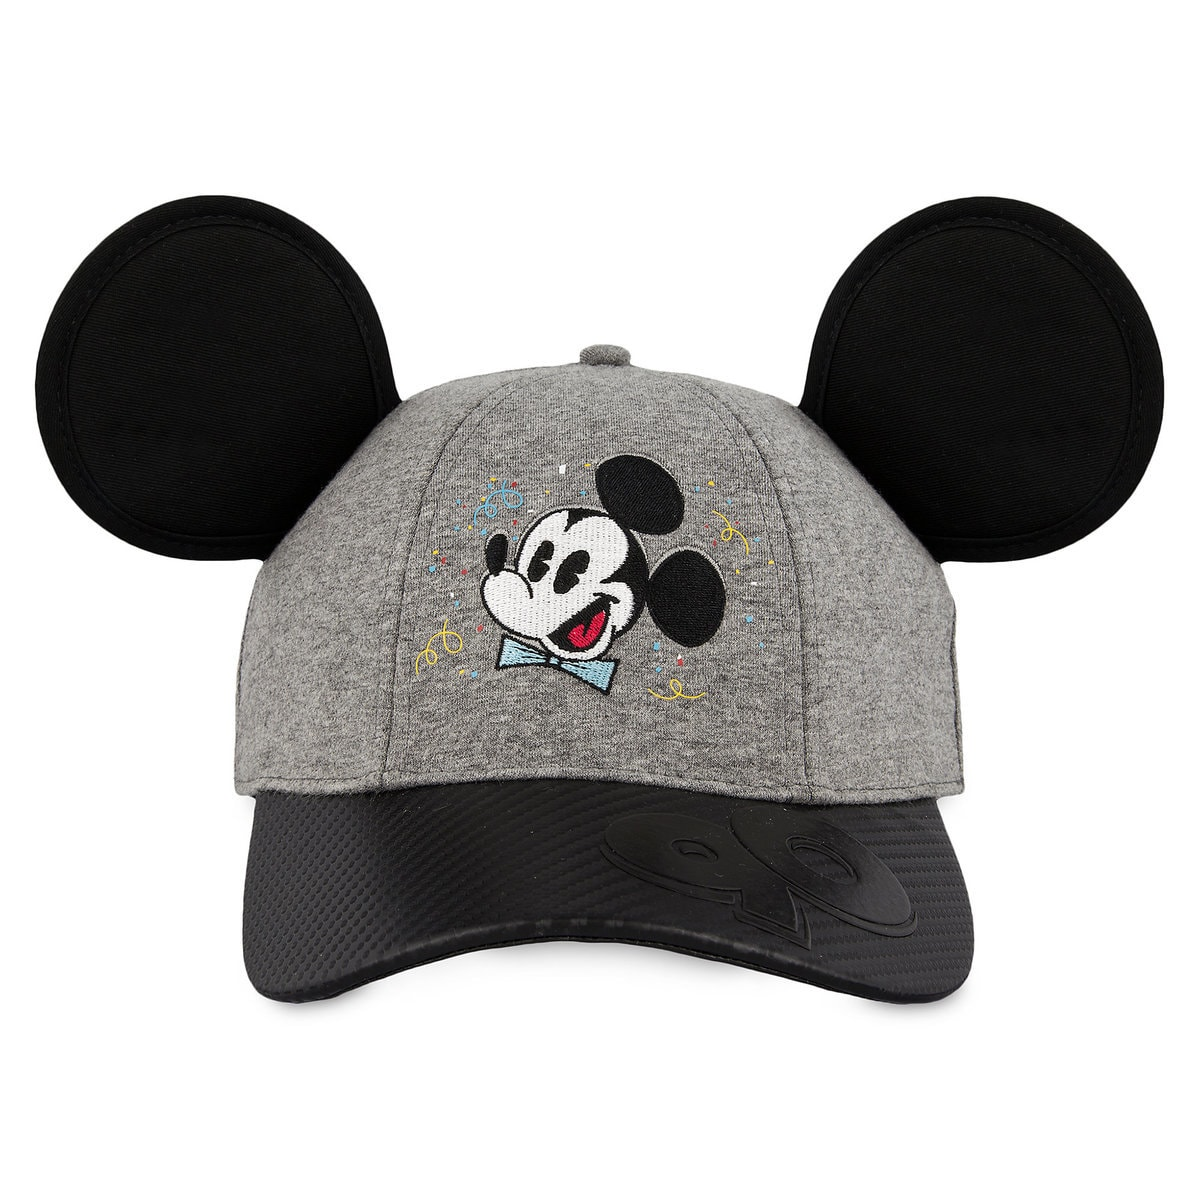 a8703ba514638 Product Image of Mickey Mouse   Celebration of the Mouse   Baseball Cap for